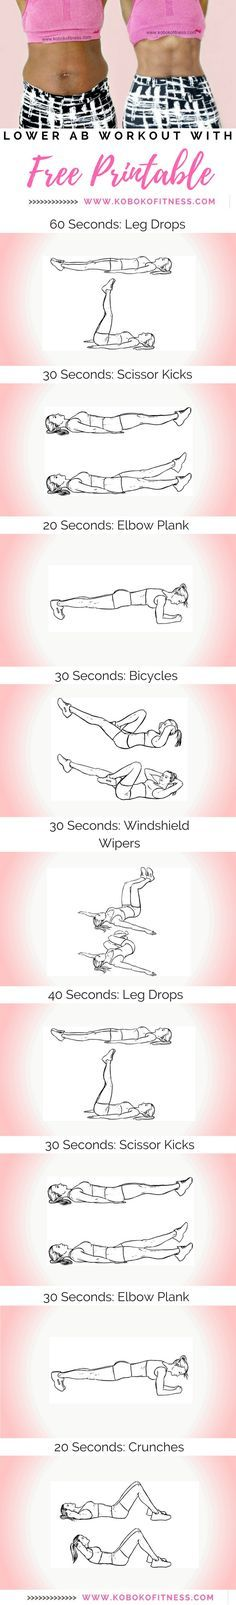 You discovered the best lower ab workout to get rid of a belly pooch and have nicer abs. No equipment needed and only 10 minutes to your best abs ever